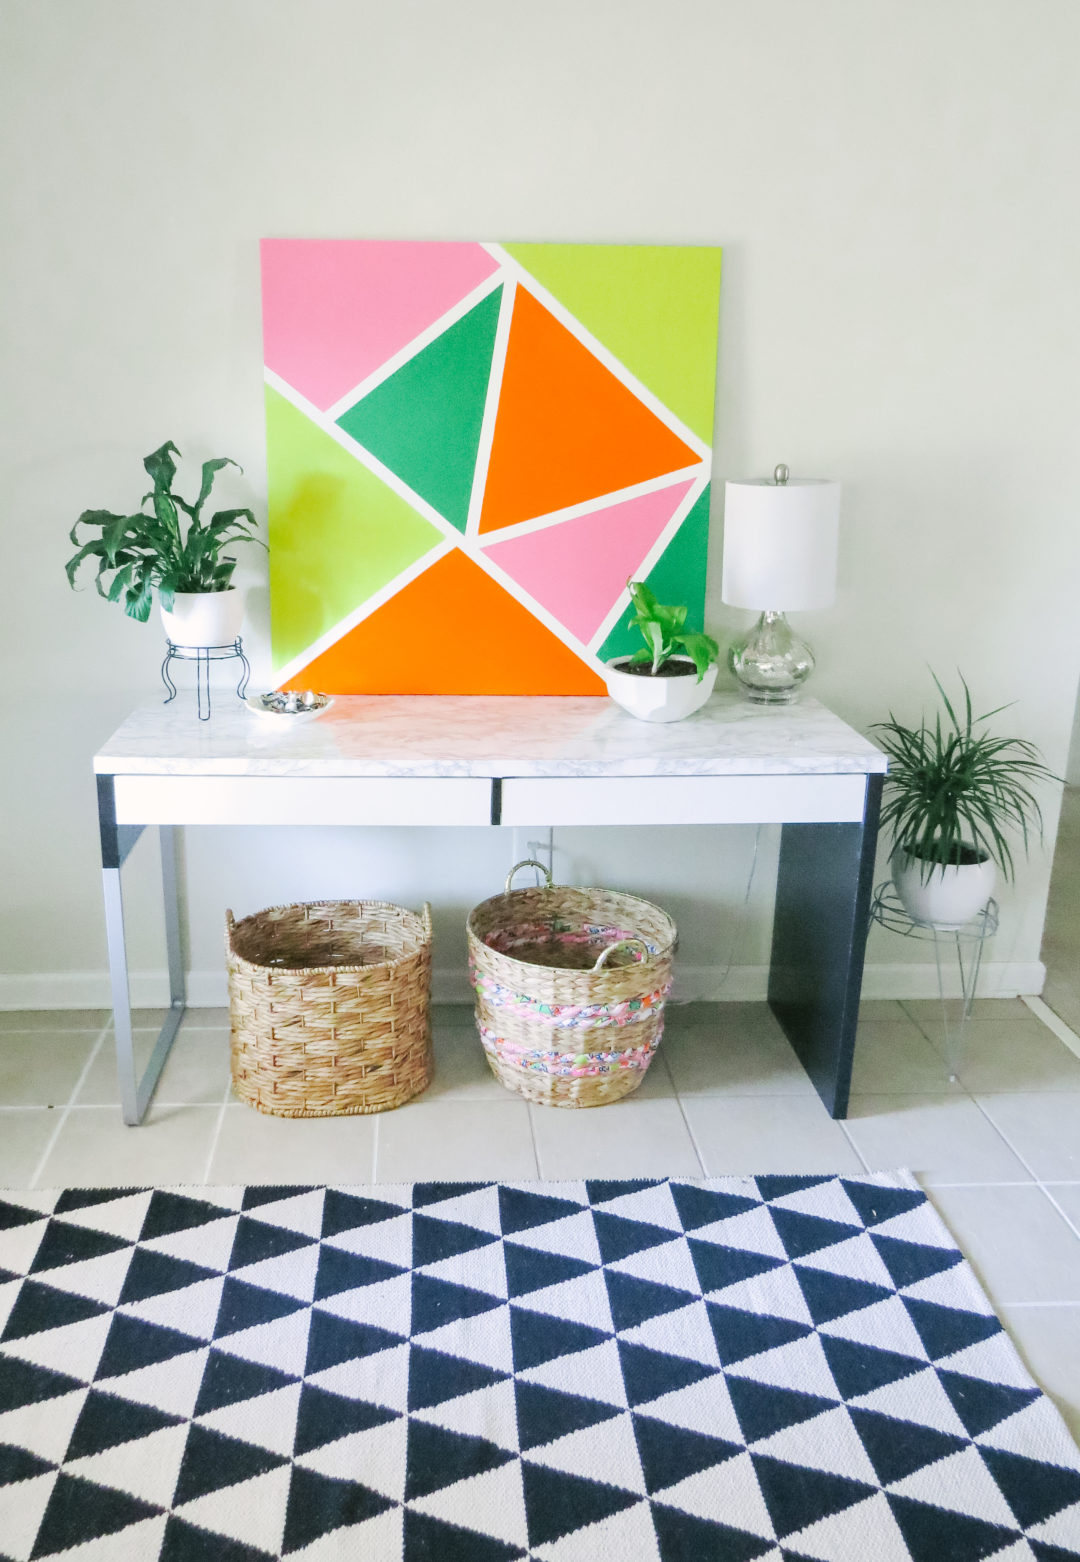 Wall Decoration Ideas - DIY Abstract Painting